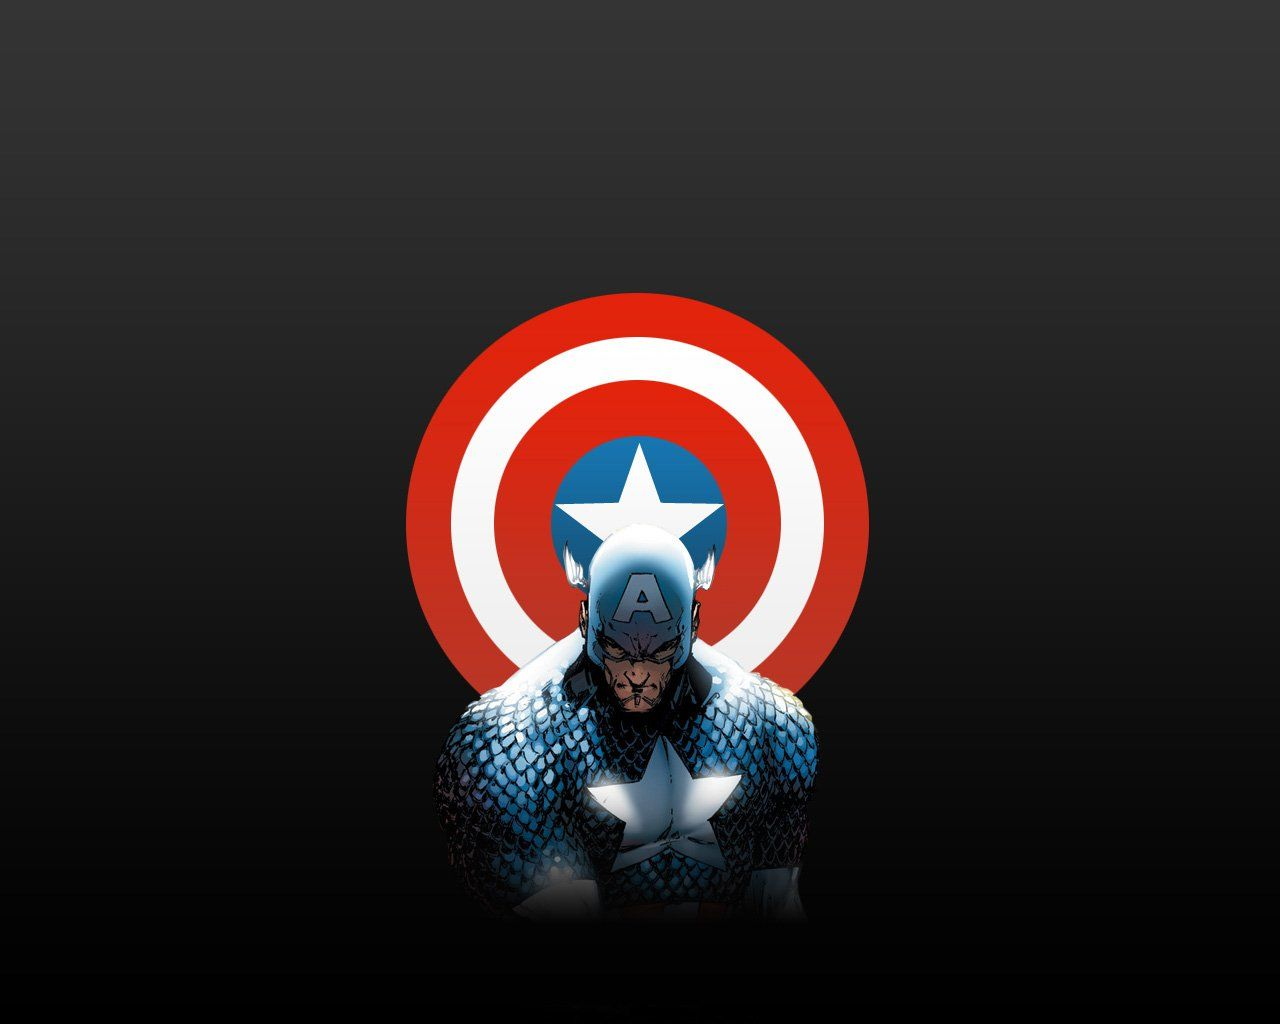 Hd wallpaper of captain america - Captain America The Winter Soldier Hd Wallpapers Facebook Covers